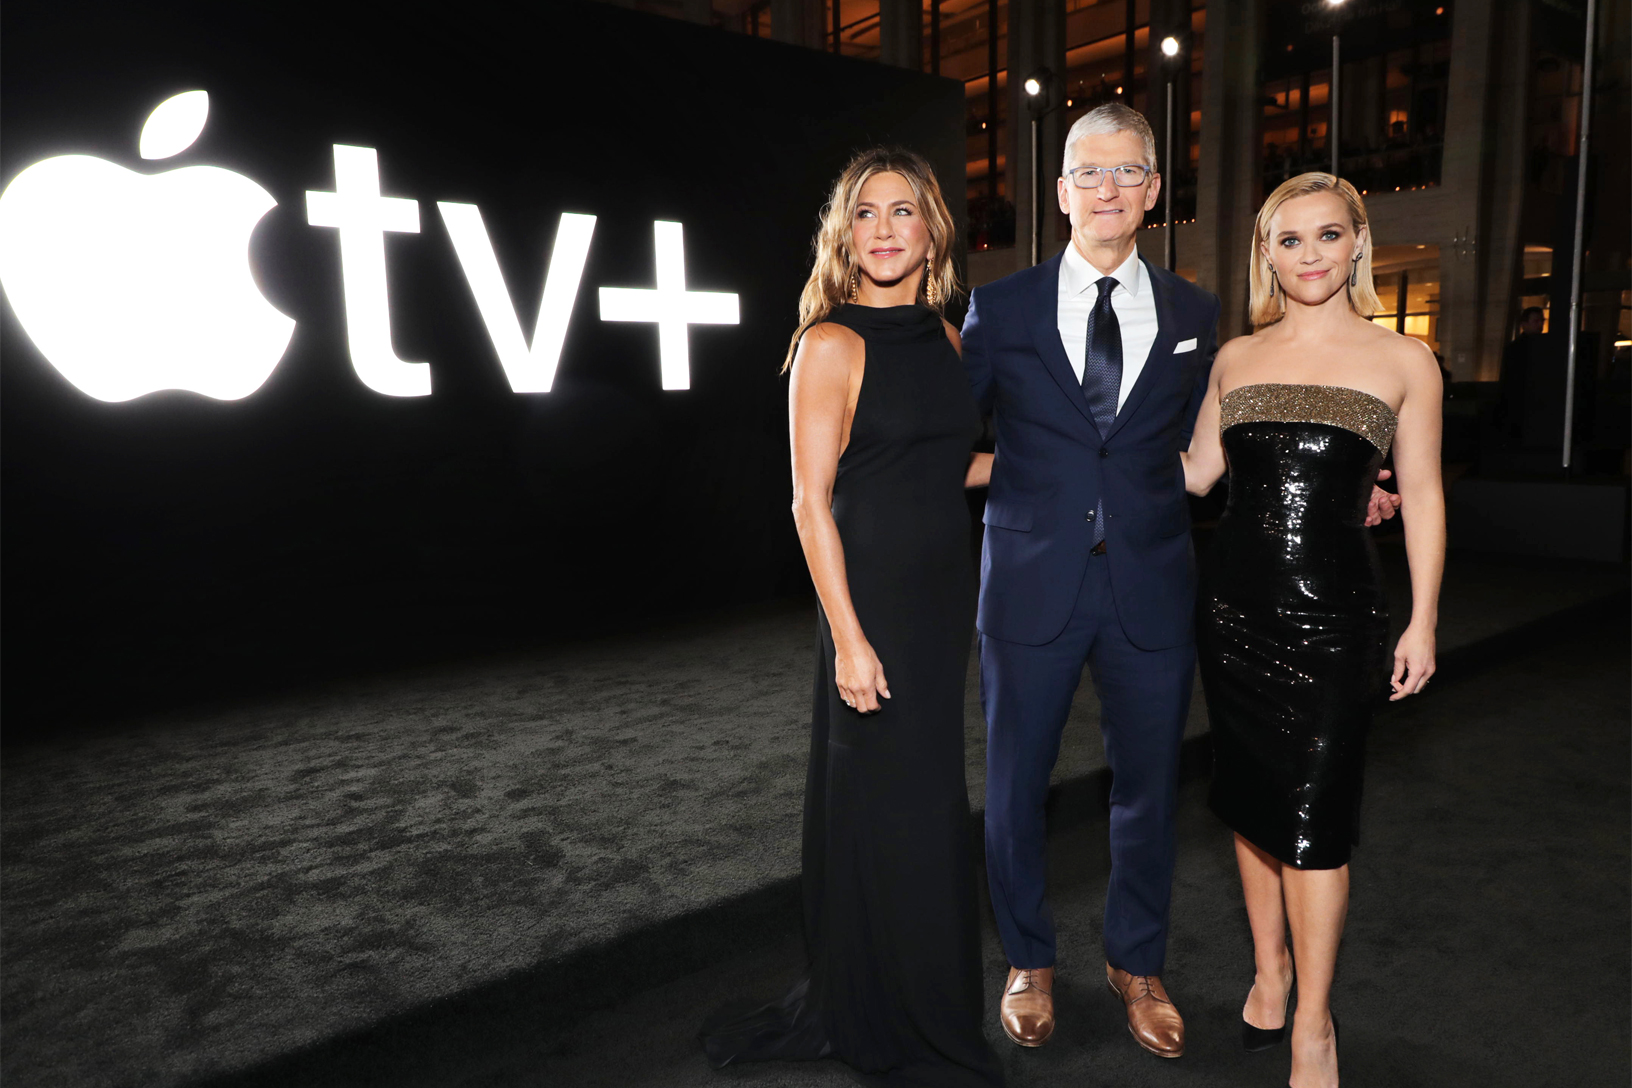 'The Morning Show' Premiere Event Celebrates Upcoming Launch of New Apple TV+ Series